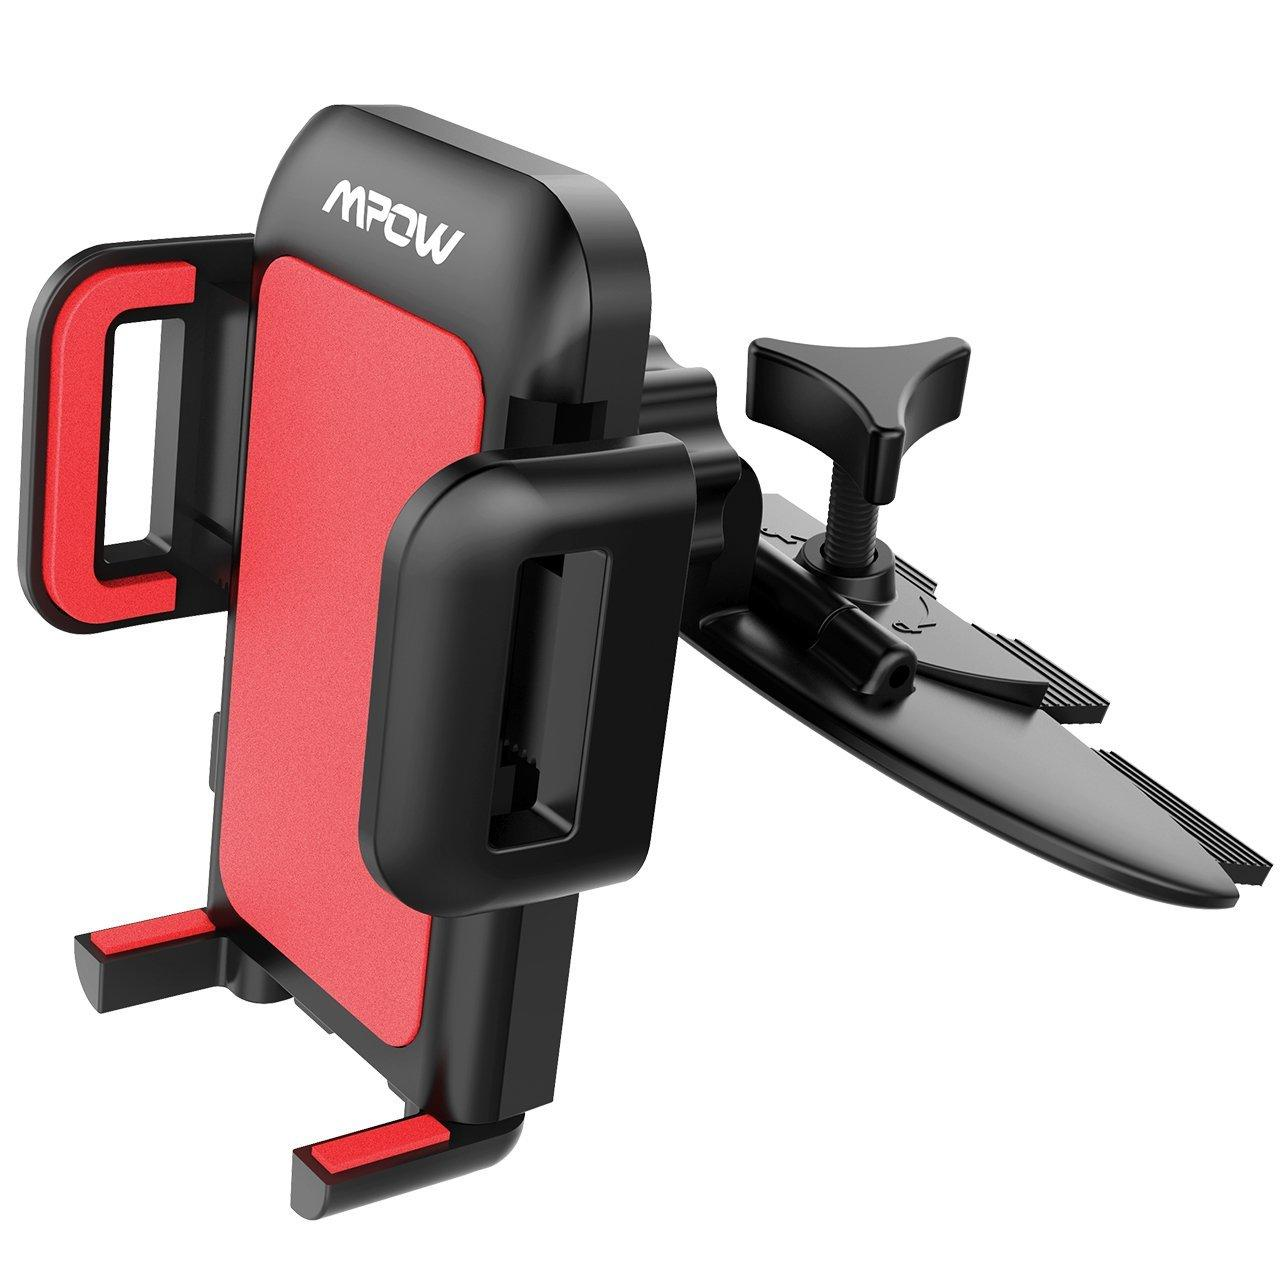 Mpow CD Slot Car Mount Smartphone Holder